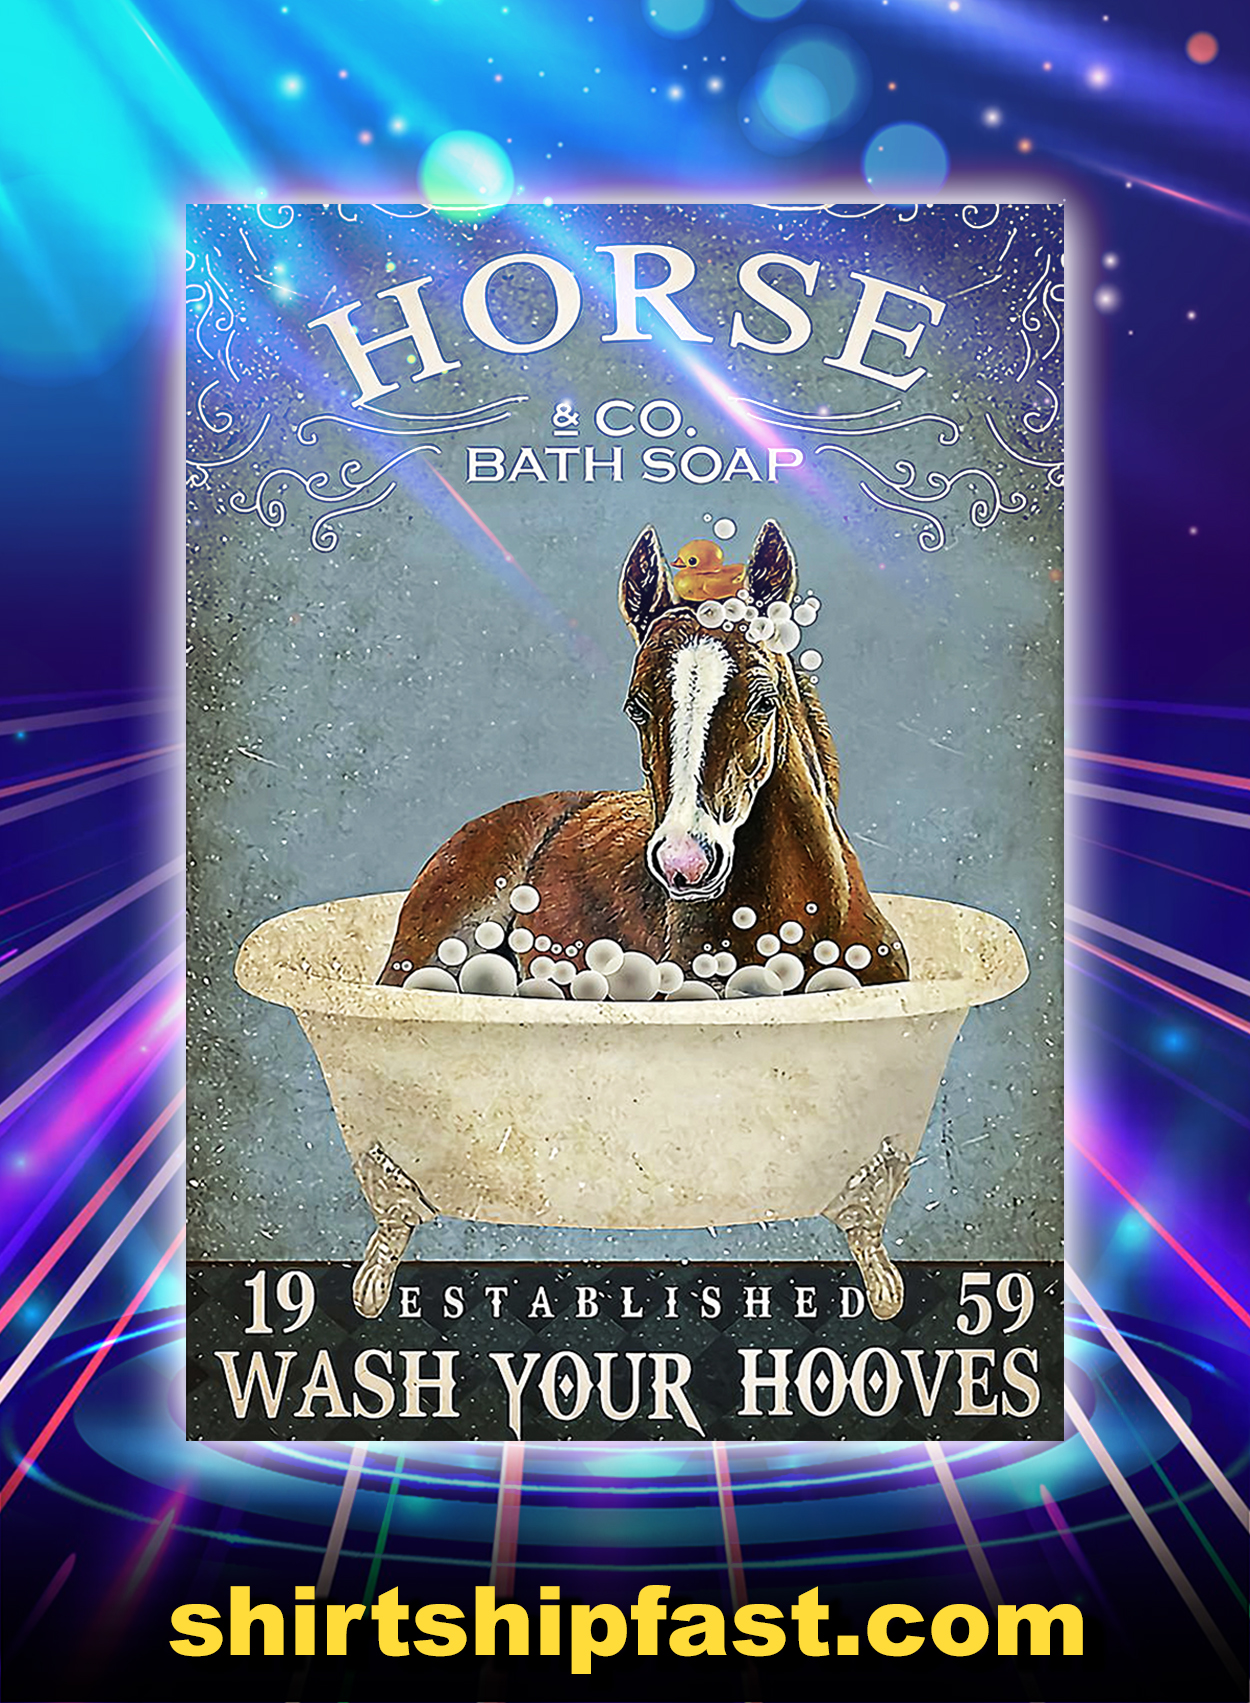 Horse co bath soap wash your hooves poster - A3